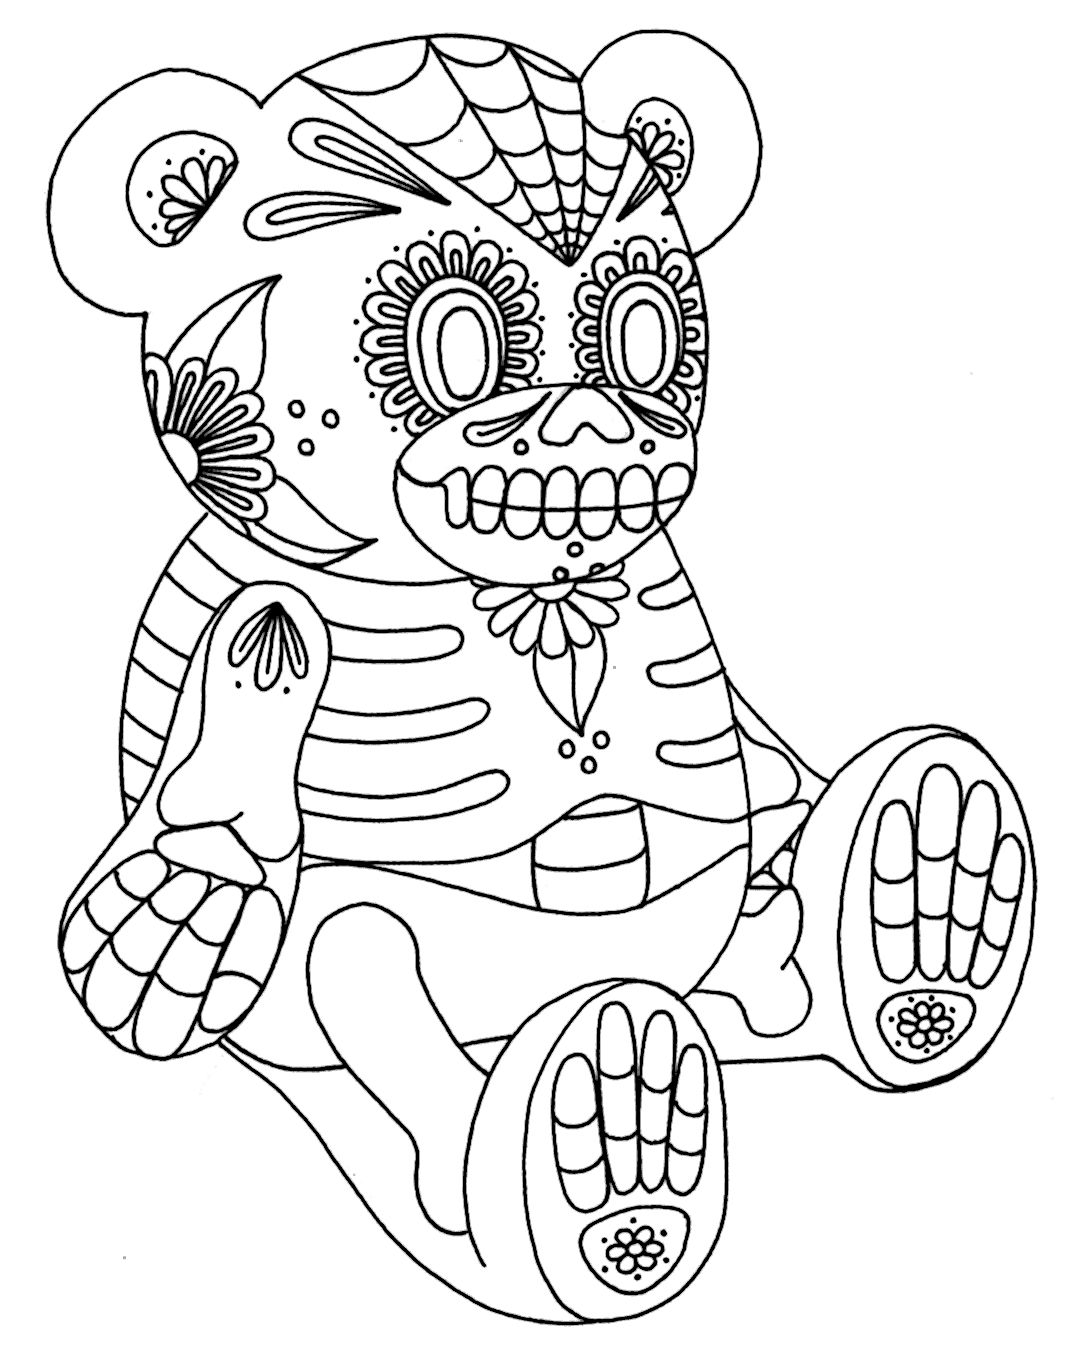 sugar candy skulls coloring pages - photo#7